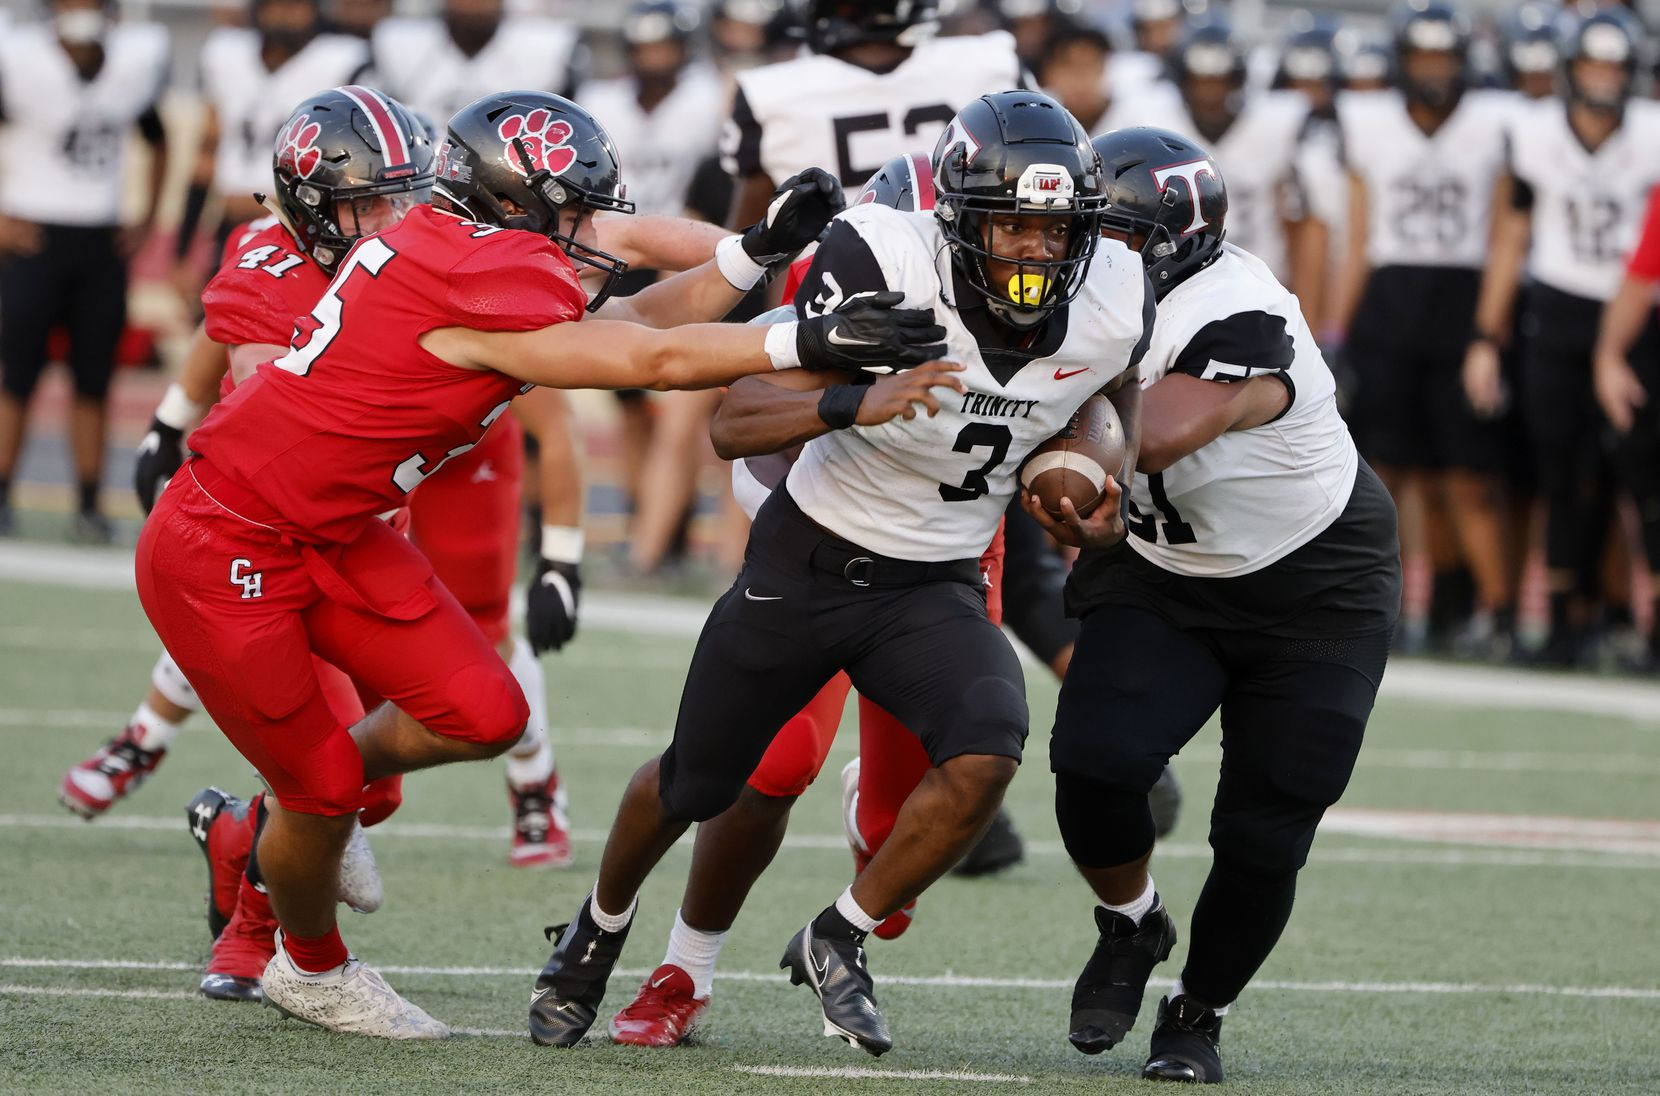 Colleyville's Nathan Miller (left) fails to contain Euless Trinity' running back Gary Maddox (2) as he runs for a touchdown during the first half of a high school football game in Grapevine, Texas on Friday, Sept. 10, 2021. (Michael Ainsworth/Special Contributor)